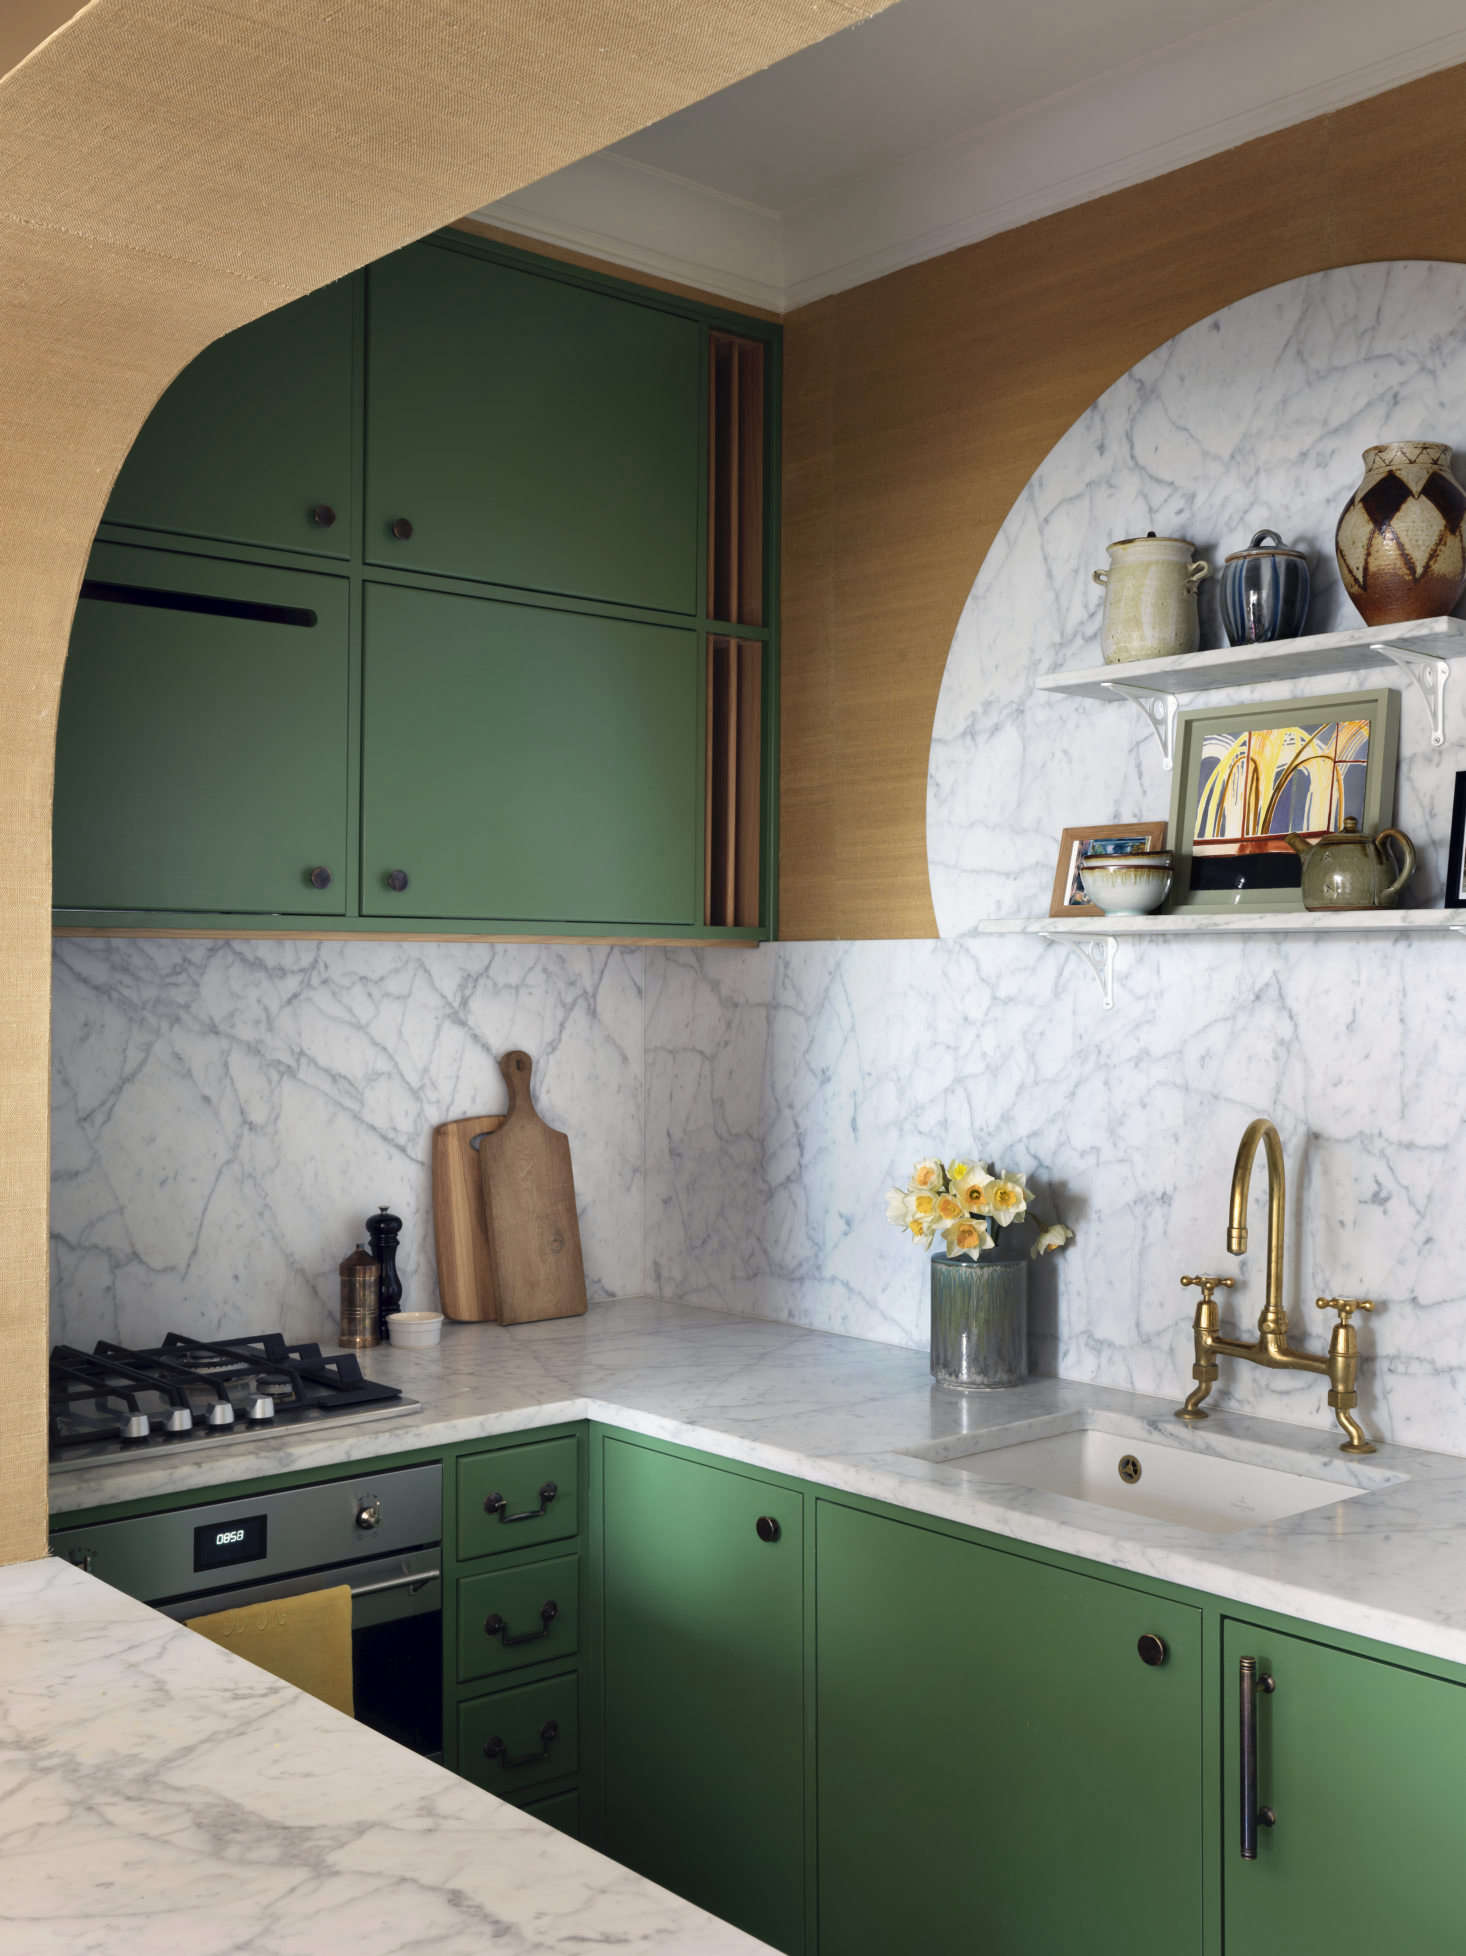 By installing bespoke kitchen cabinets—painted in Dulux&#8